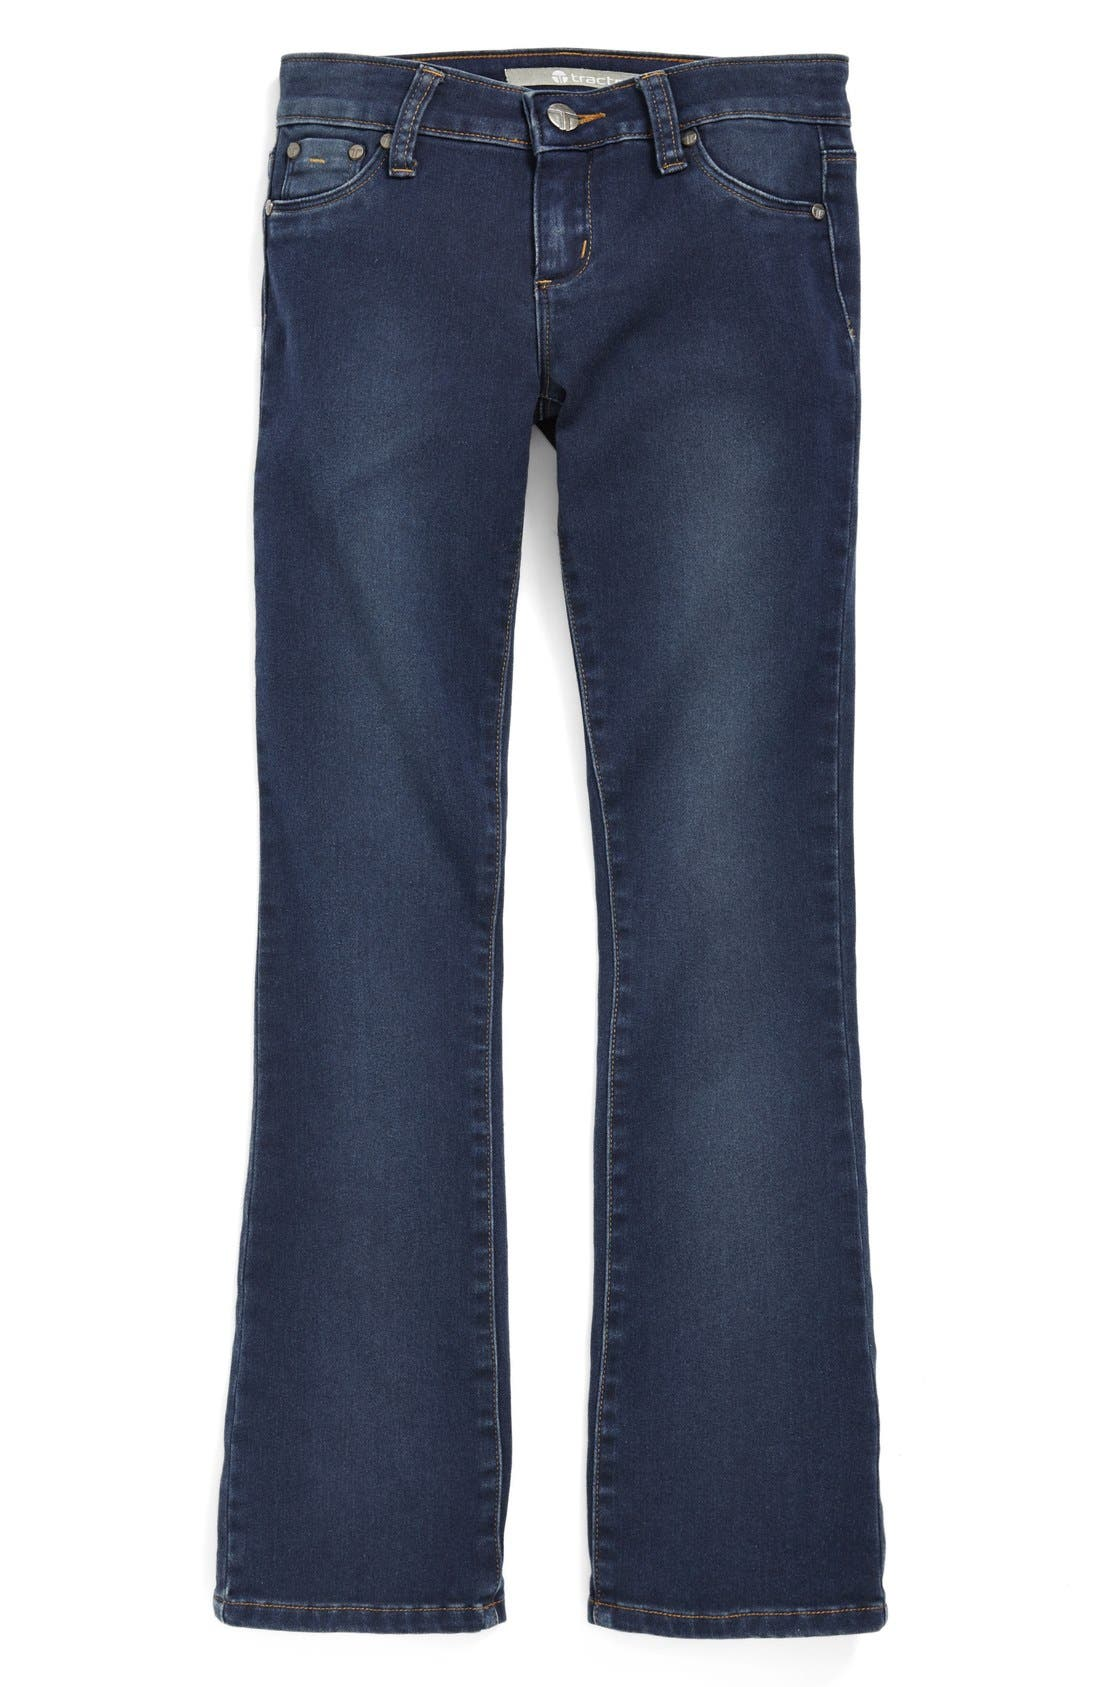 Main Image - Tractr Bootcut Stretch Denim Jeans (Big Girls)